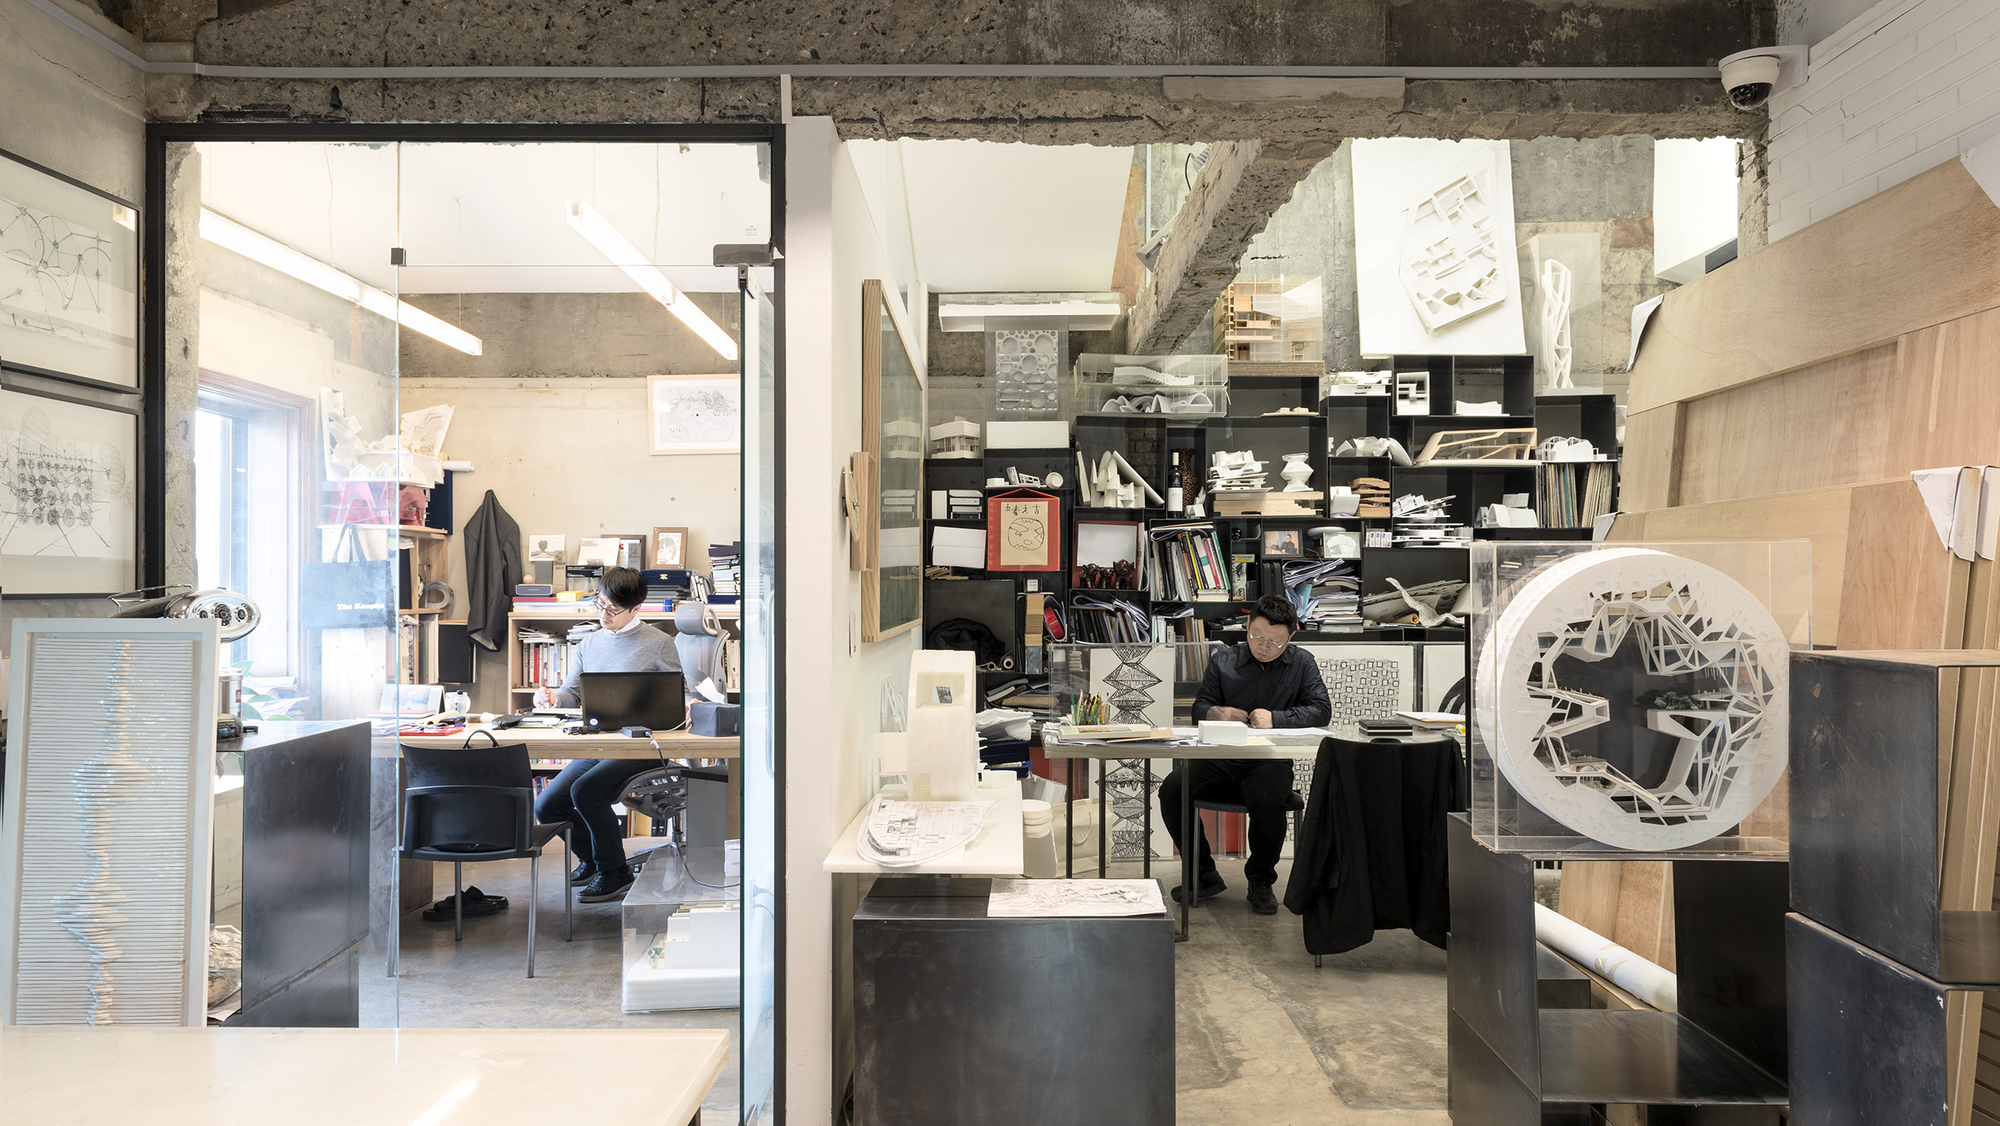 Look Inside A Collection Of Seoul Based Architecture Offices Photographed By Marc Goodwin And